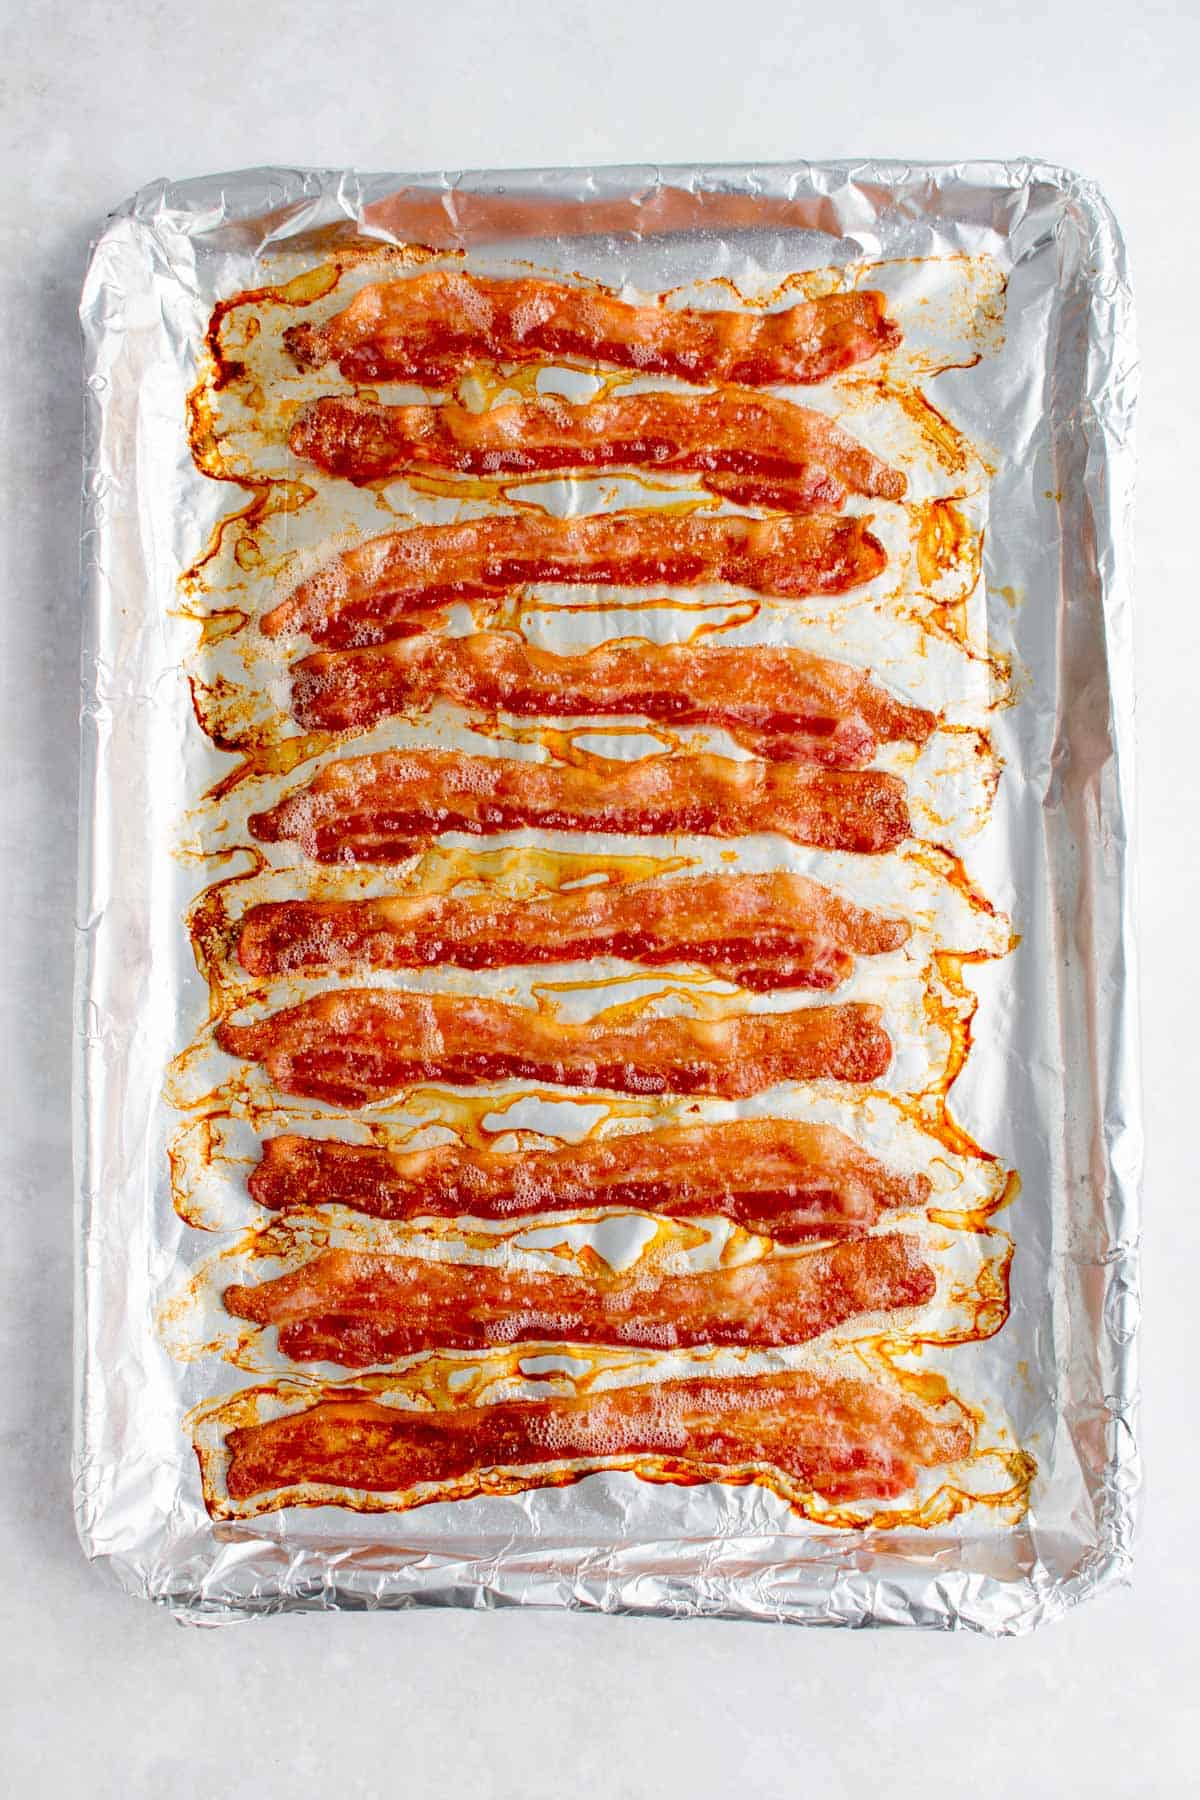 Freshly baked bacon on a sheet pan.